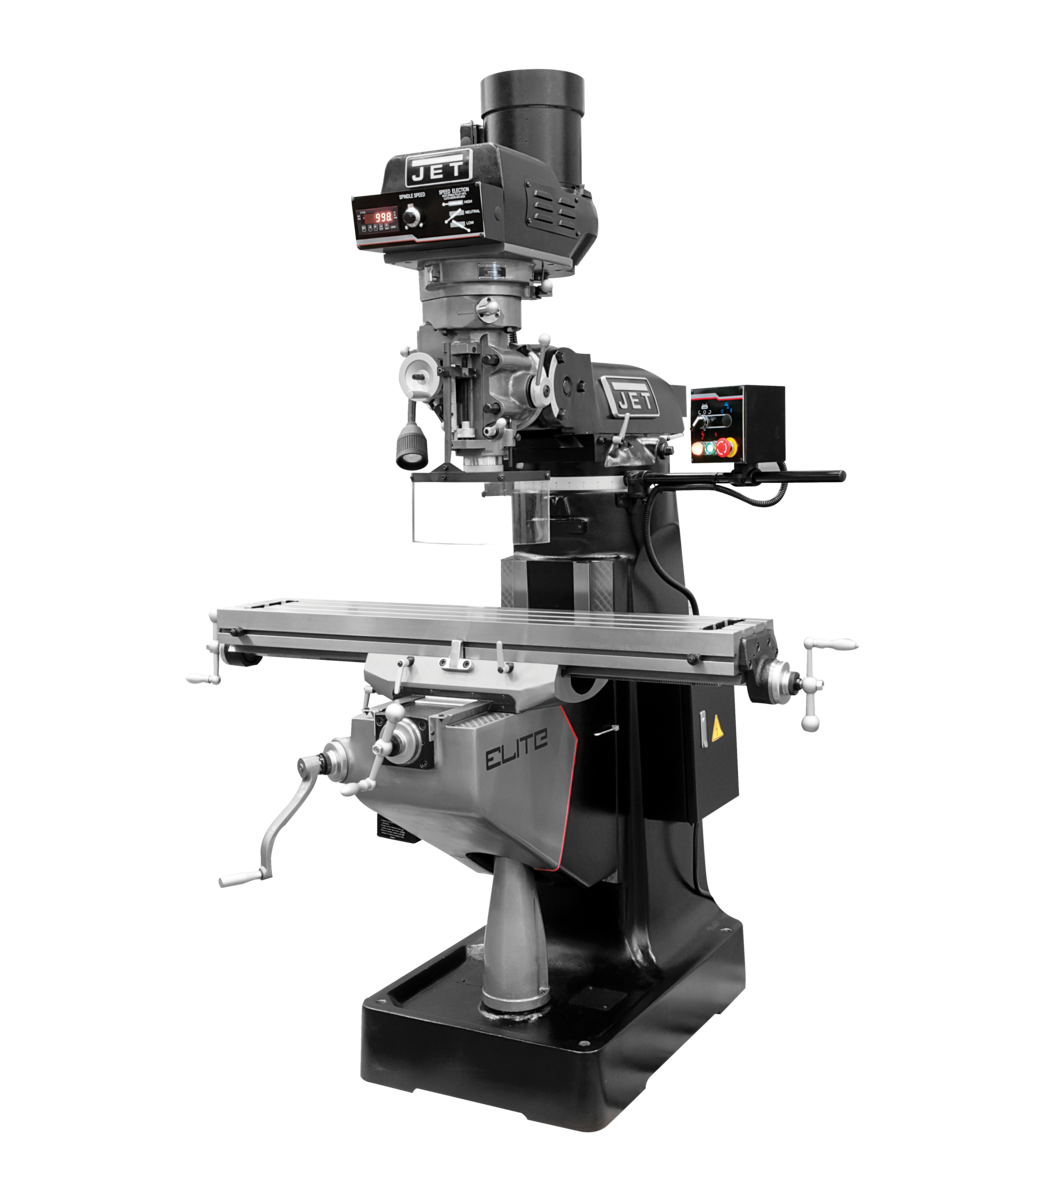 EVS-949 Mill with 3-Axis Newall DP700 (Quill) DRO and Servo X, Y, Z-Axis Powerfeeds and USA Air Powered Draw Bar